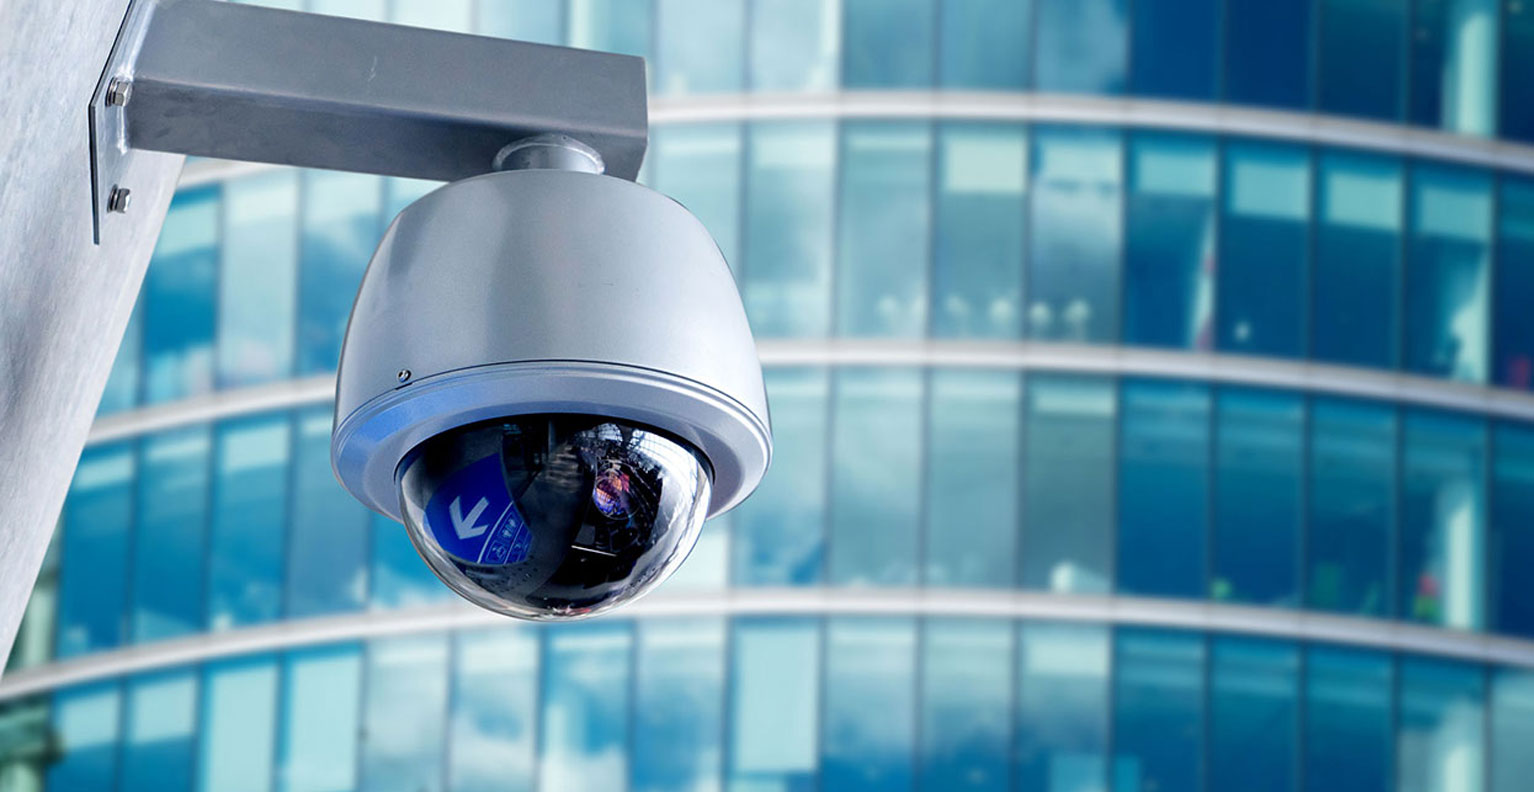 CCTV Surveillance In Kolkata, CCTV Camera, Safety Surveillance In Kolkata